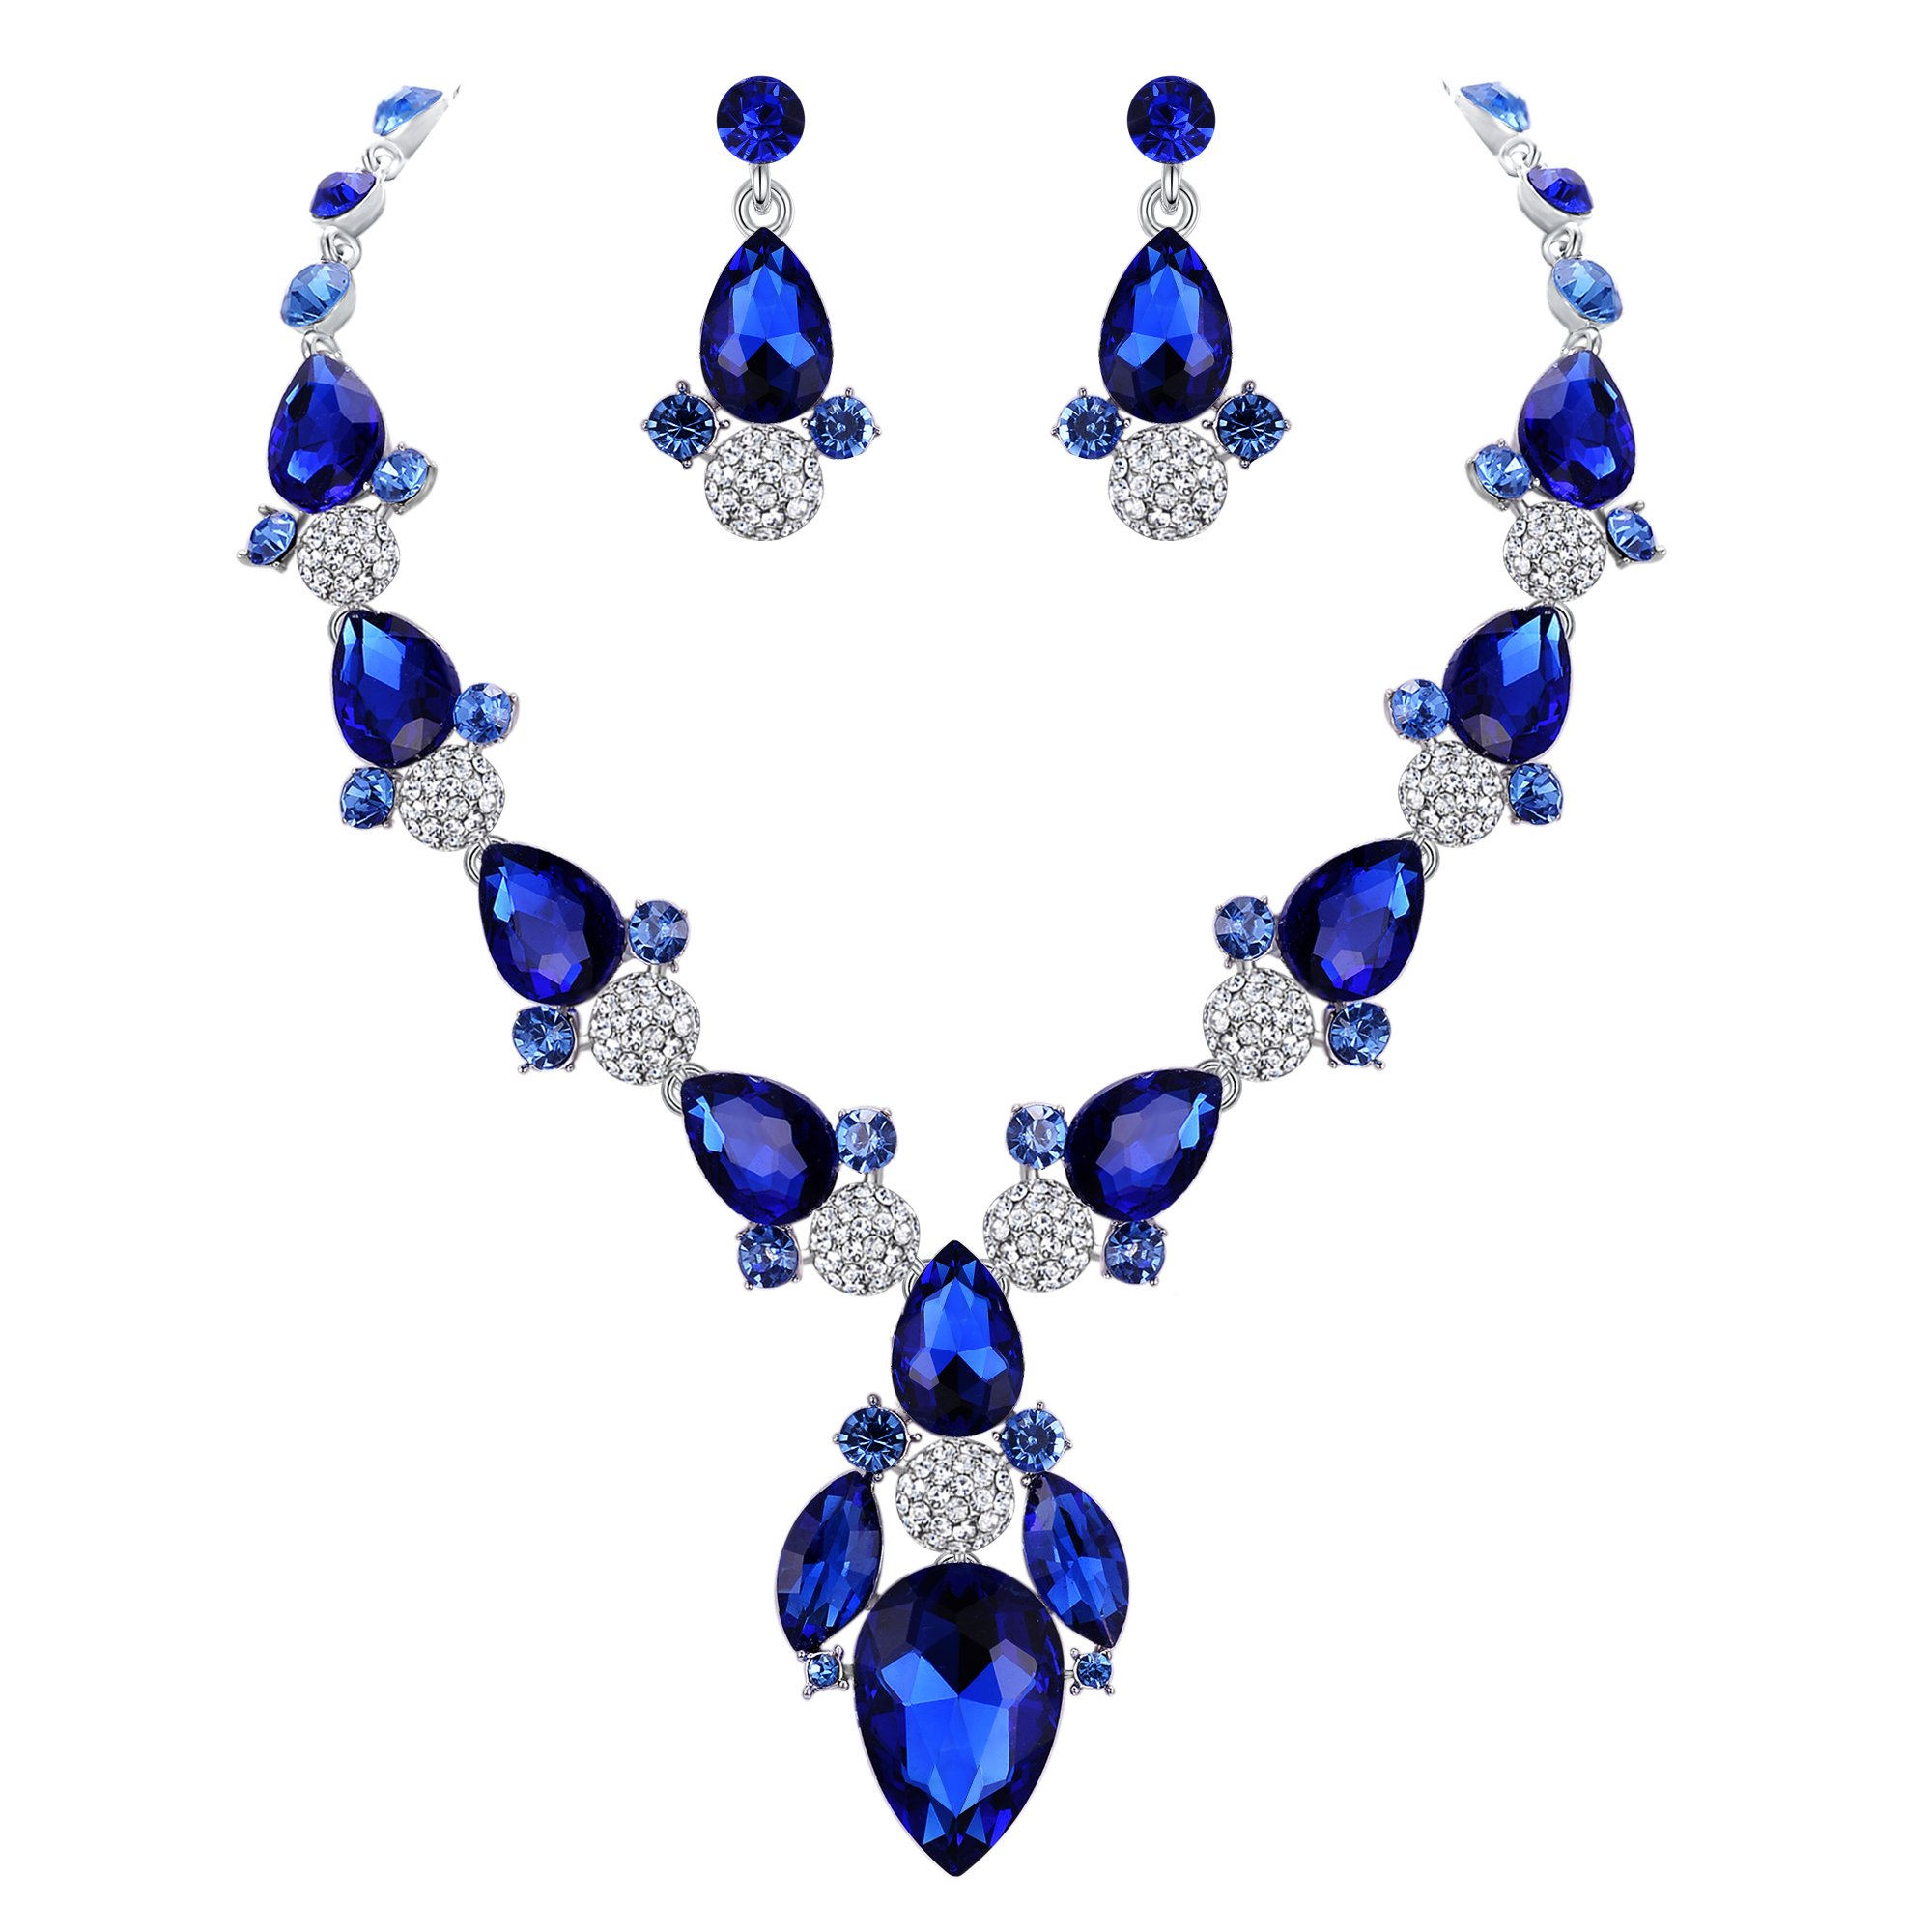 EVER FAITH Crystal Glamorous Floral Teardrop Necklace Earrings Set for Bride, Prom Blue Silver-Tone